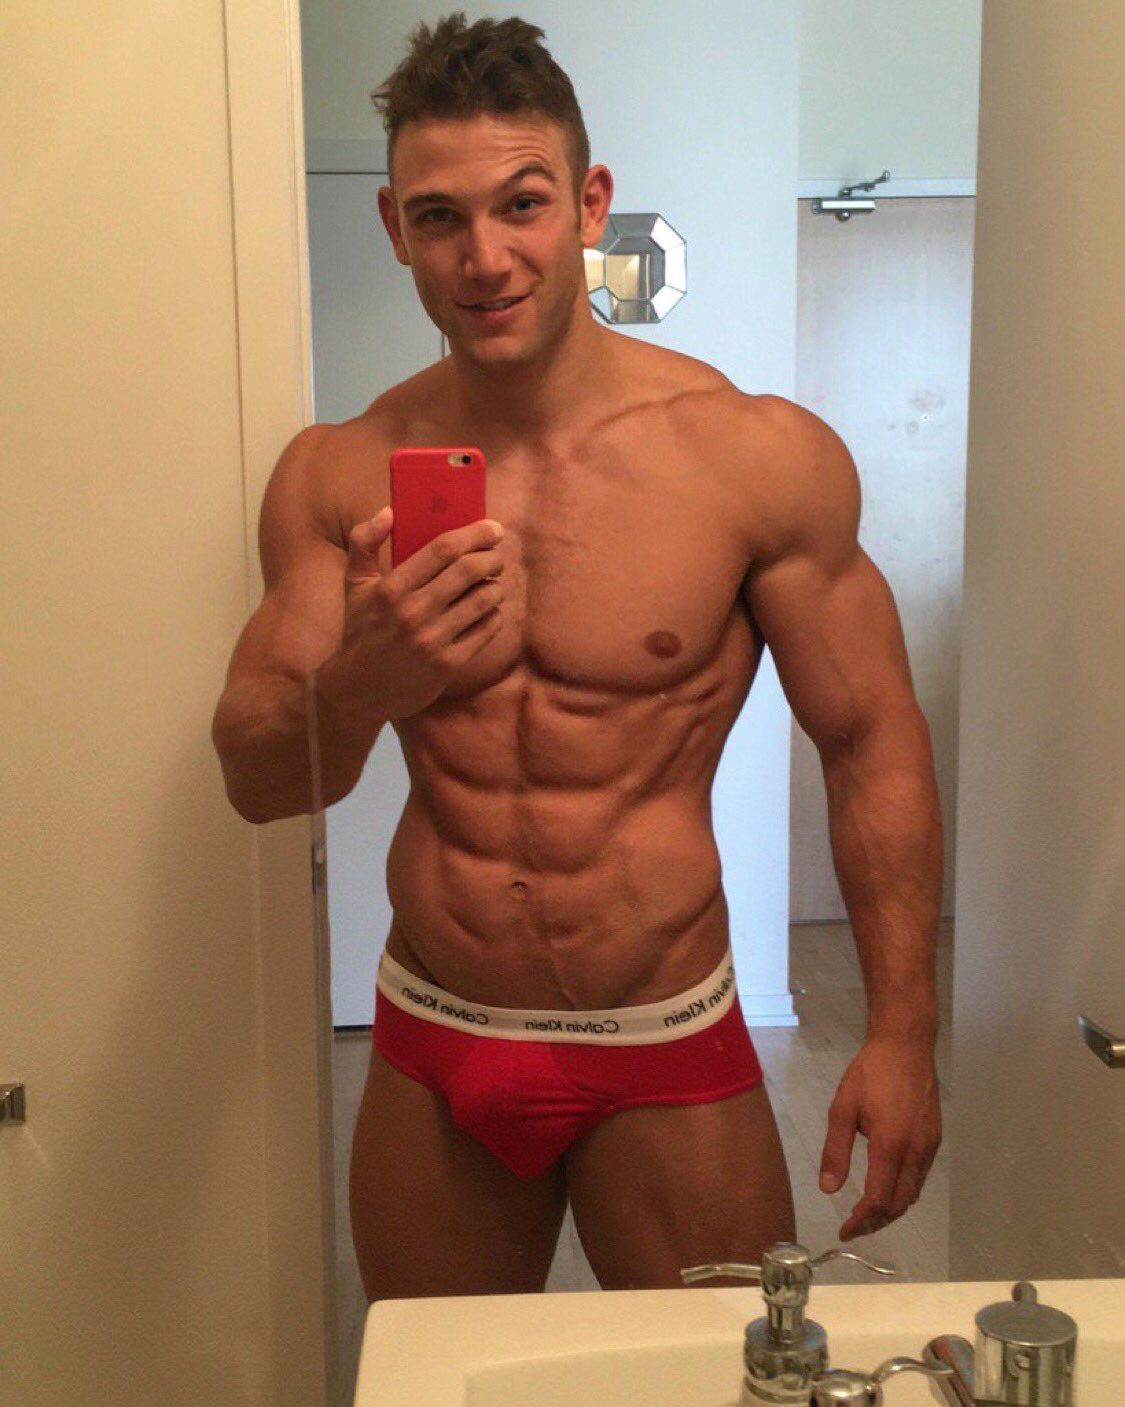 Pin by HN on Fit evergreen!   Pinterest   Underwear and Hot guys